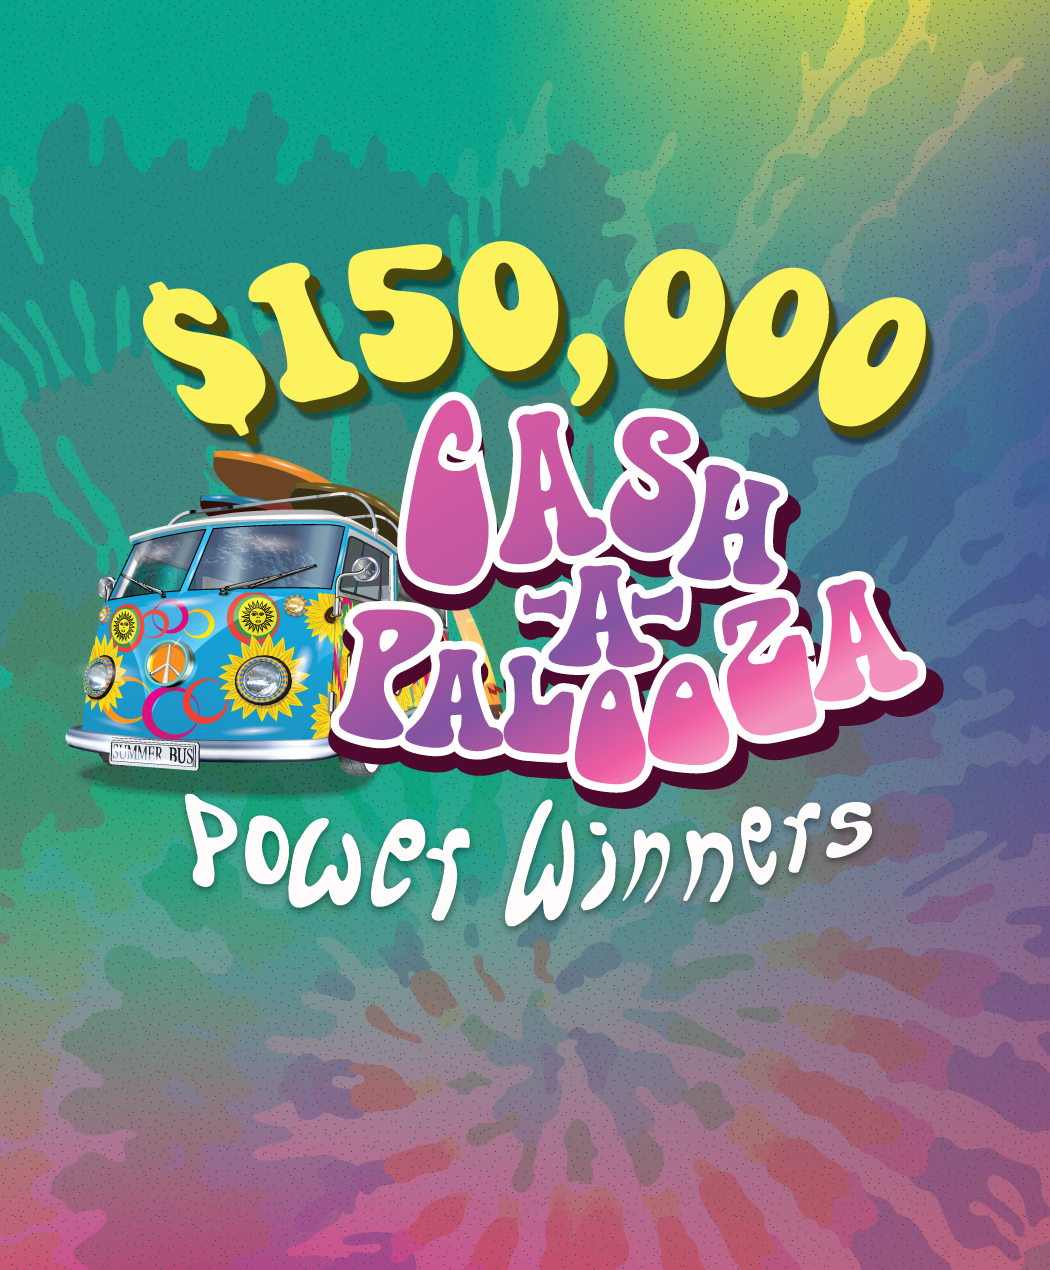 $150,000 Cash-A-Palooza Power Winners